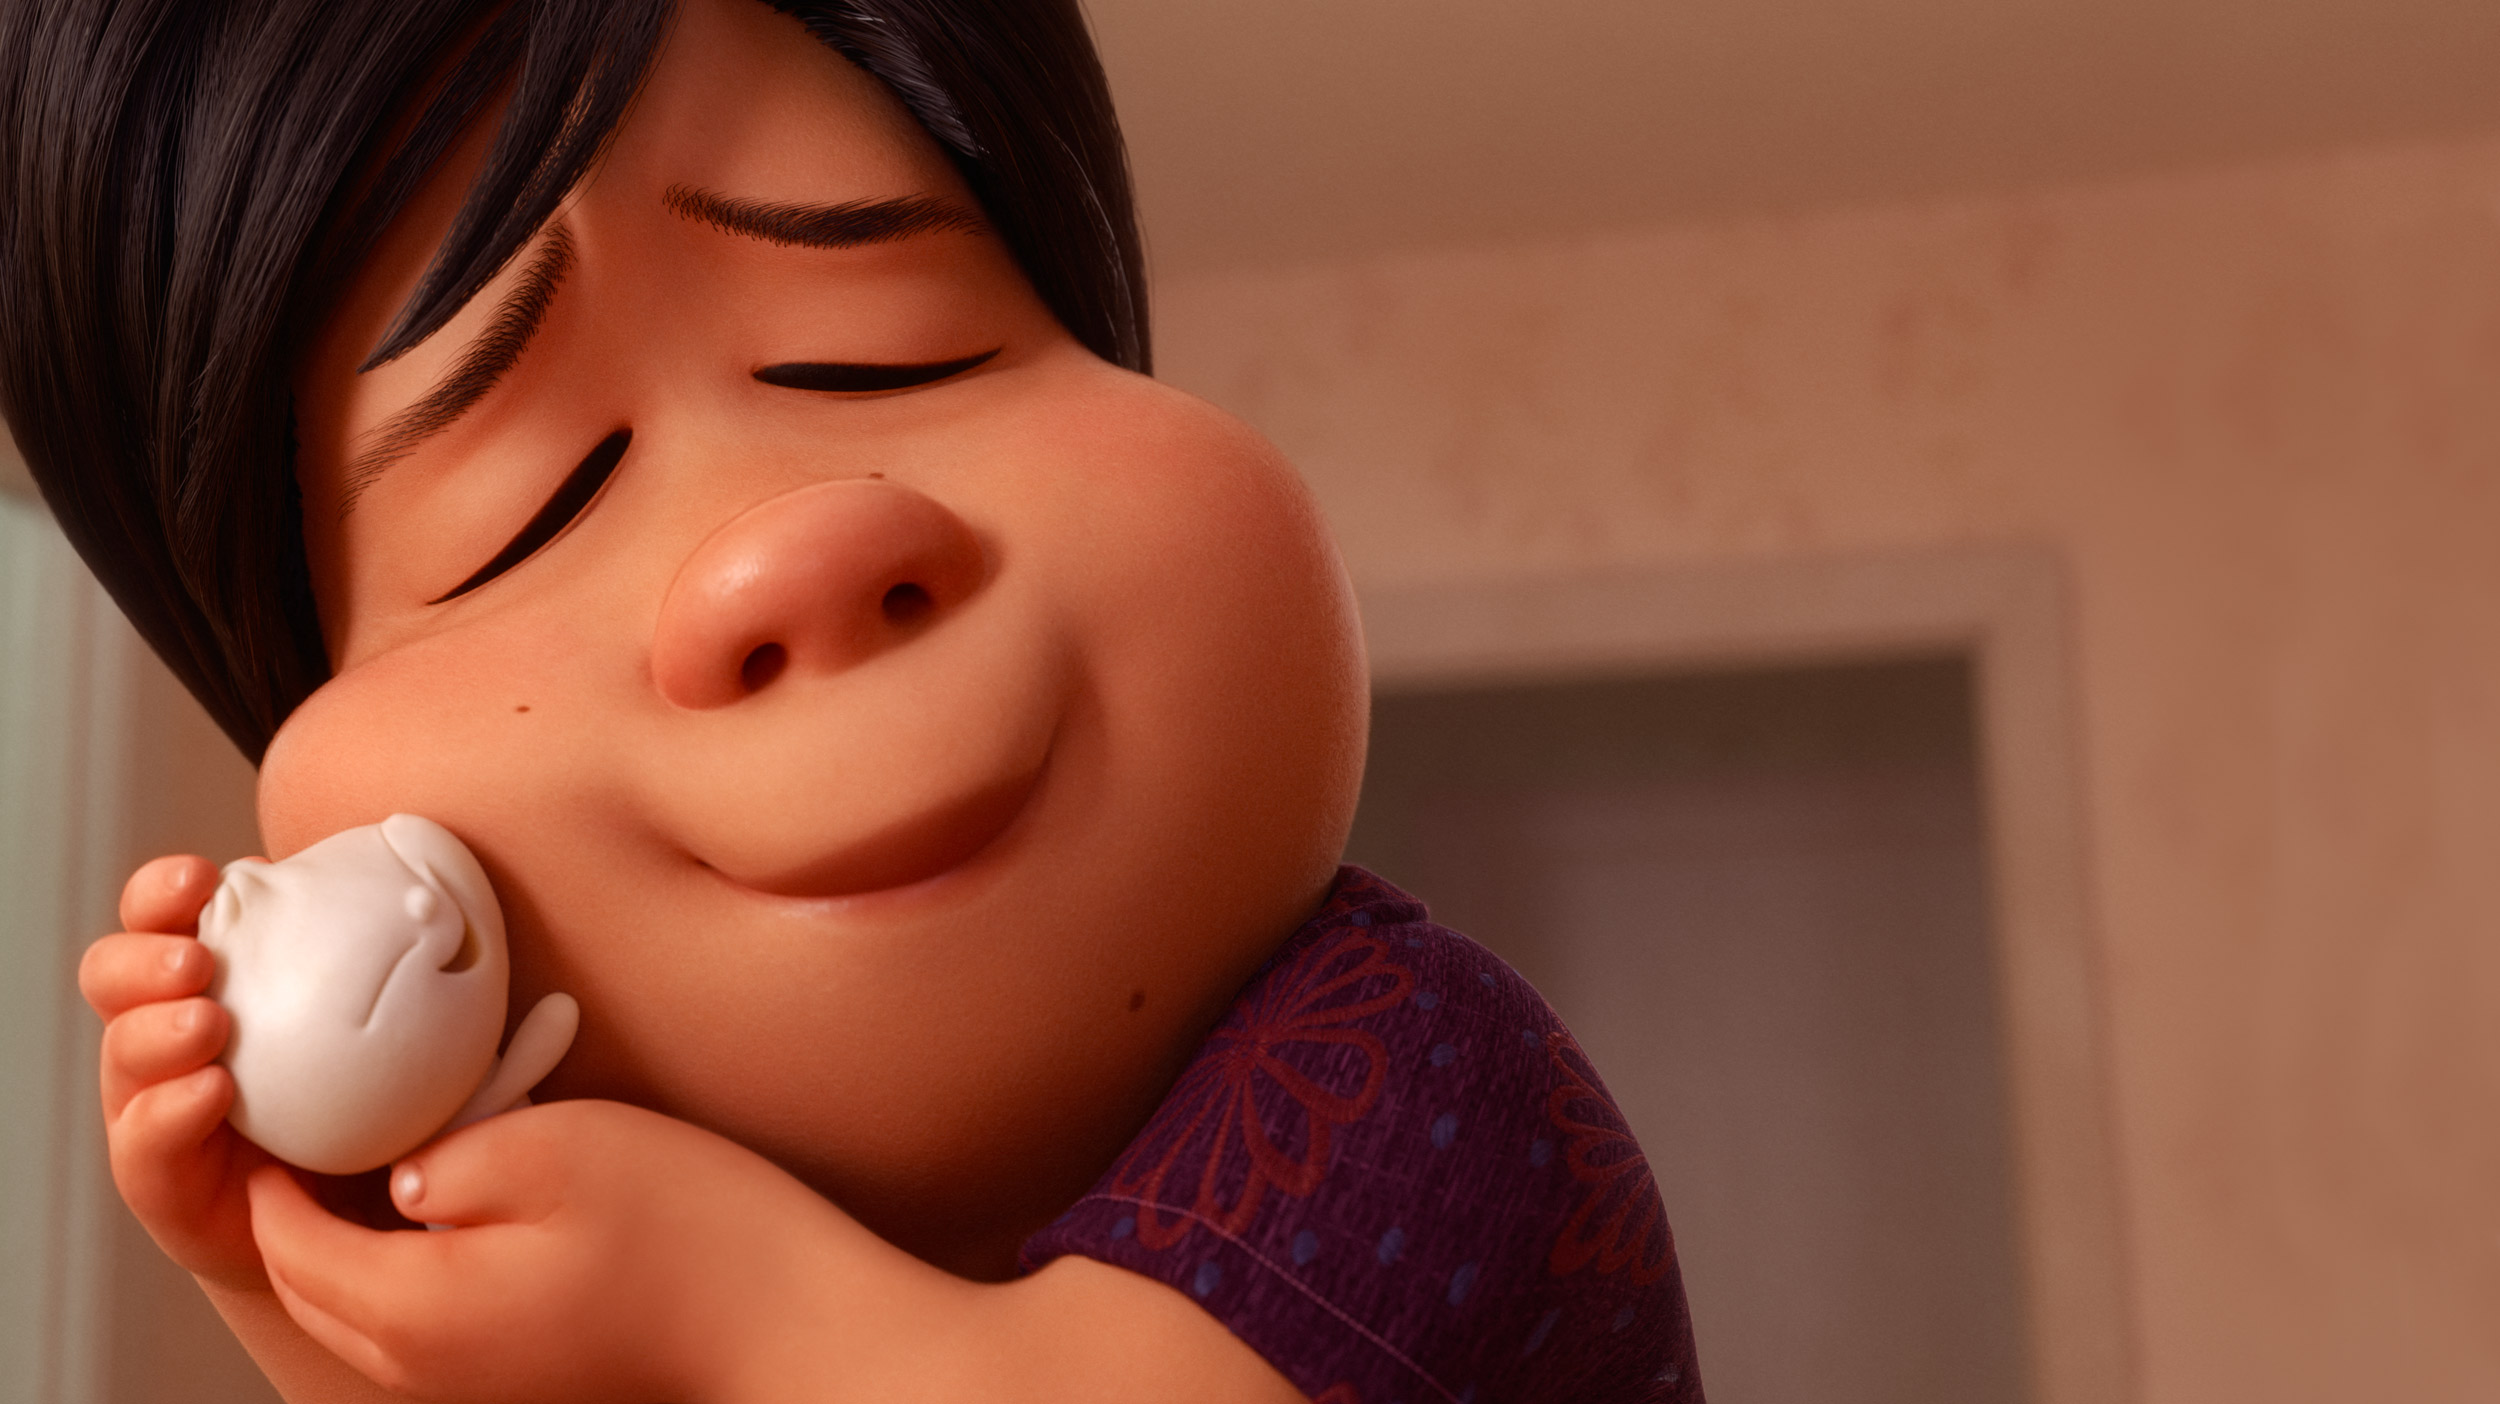 watch: a clip from pixar's upcoming short film 'bao' | alice@973